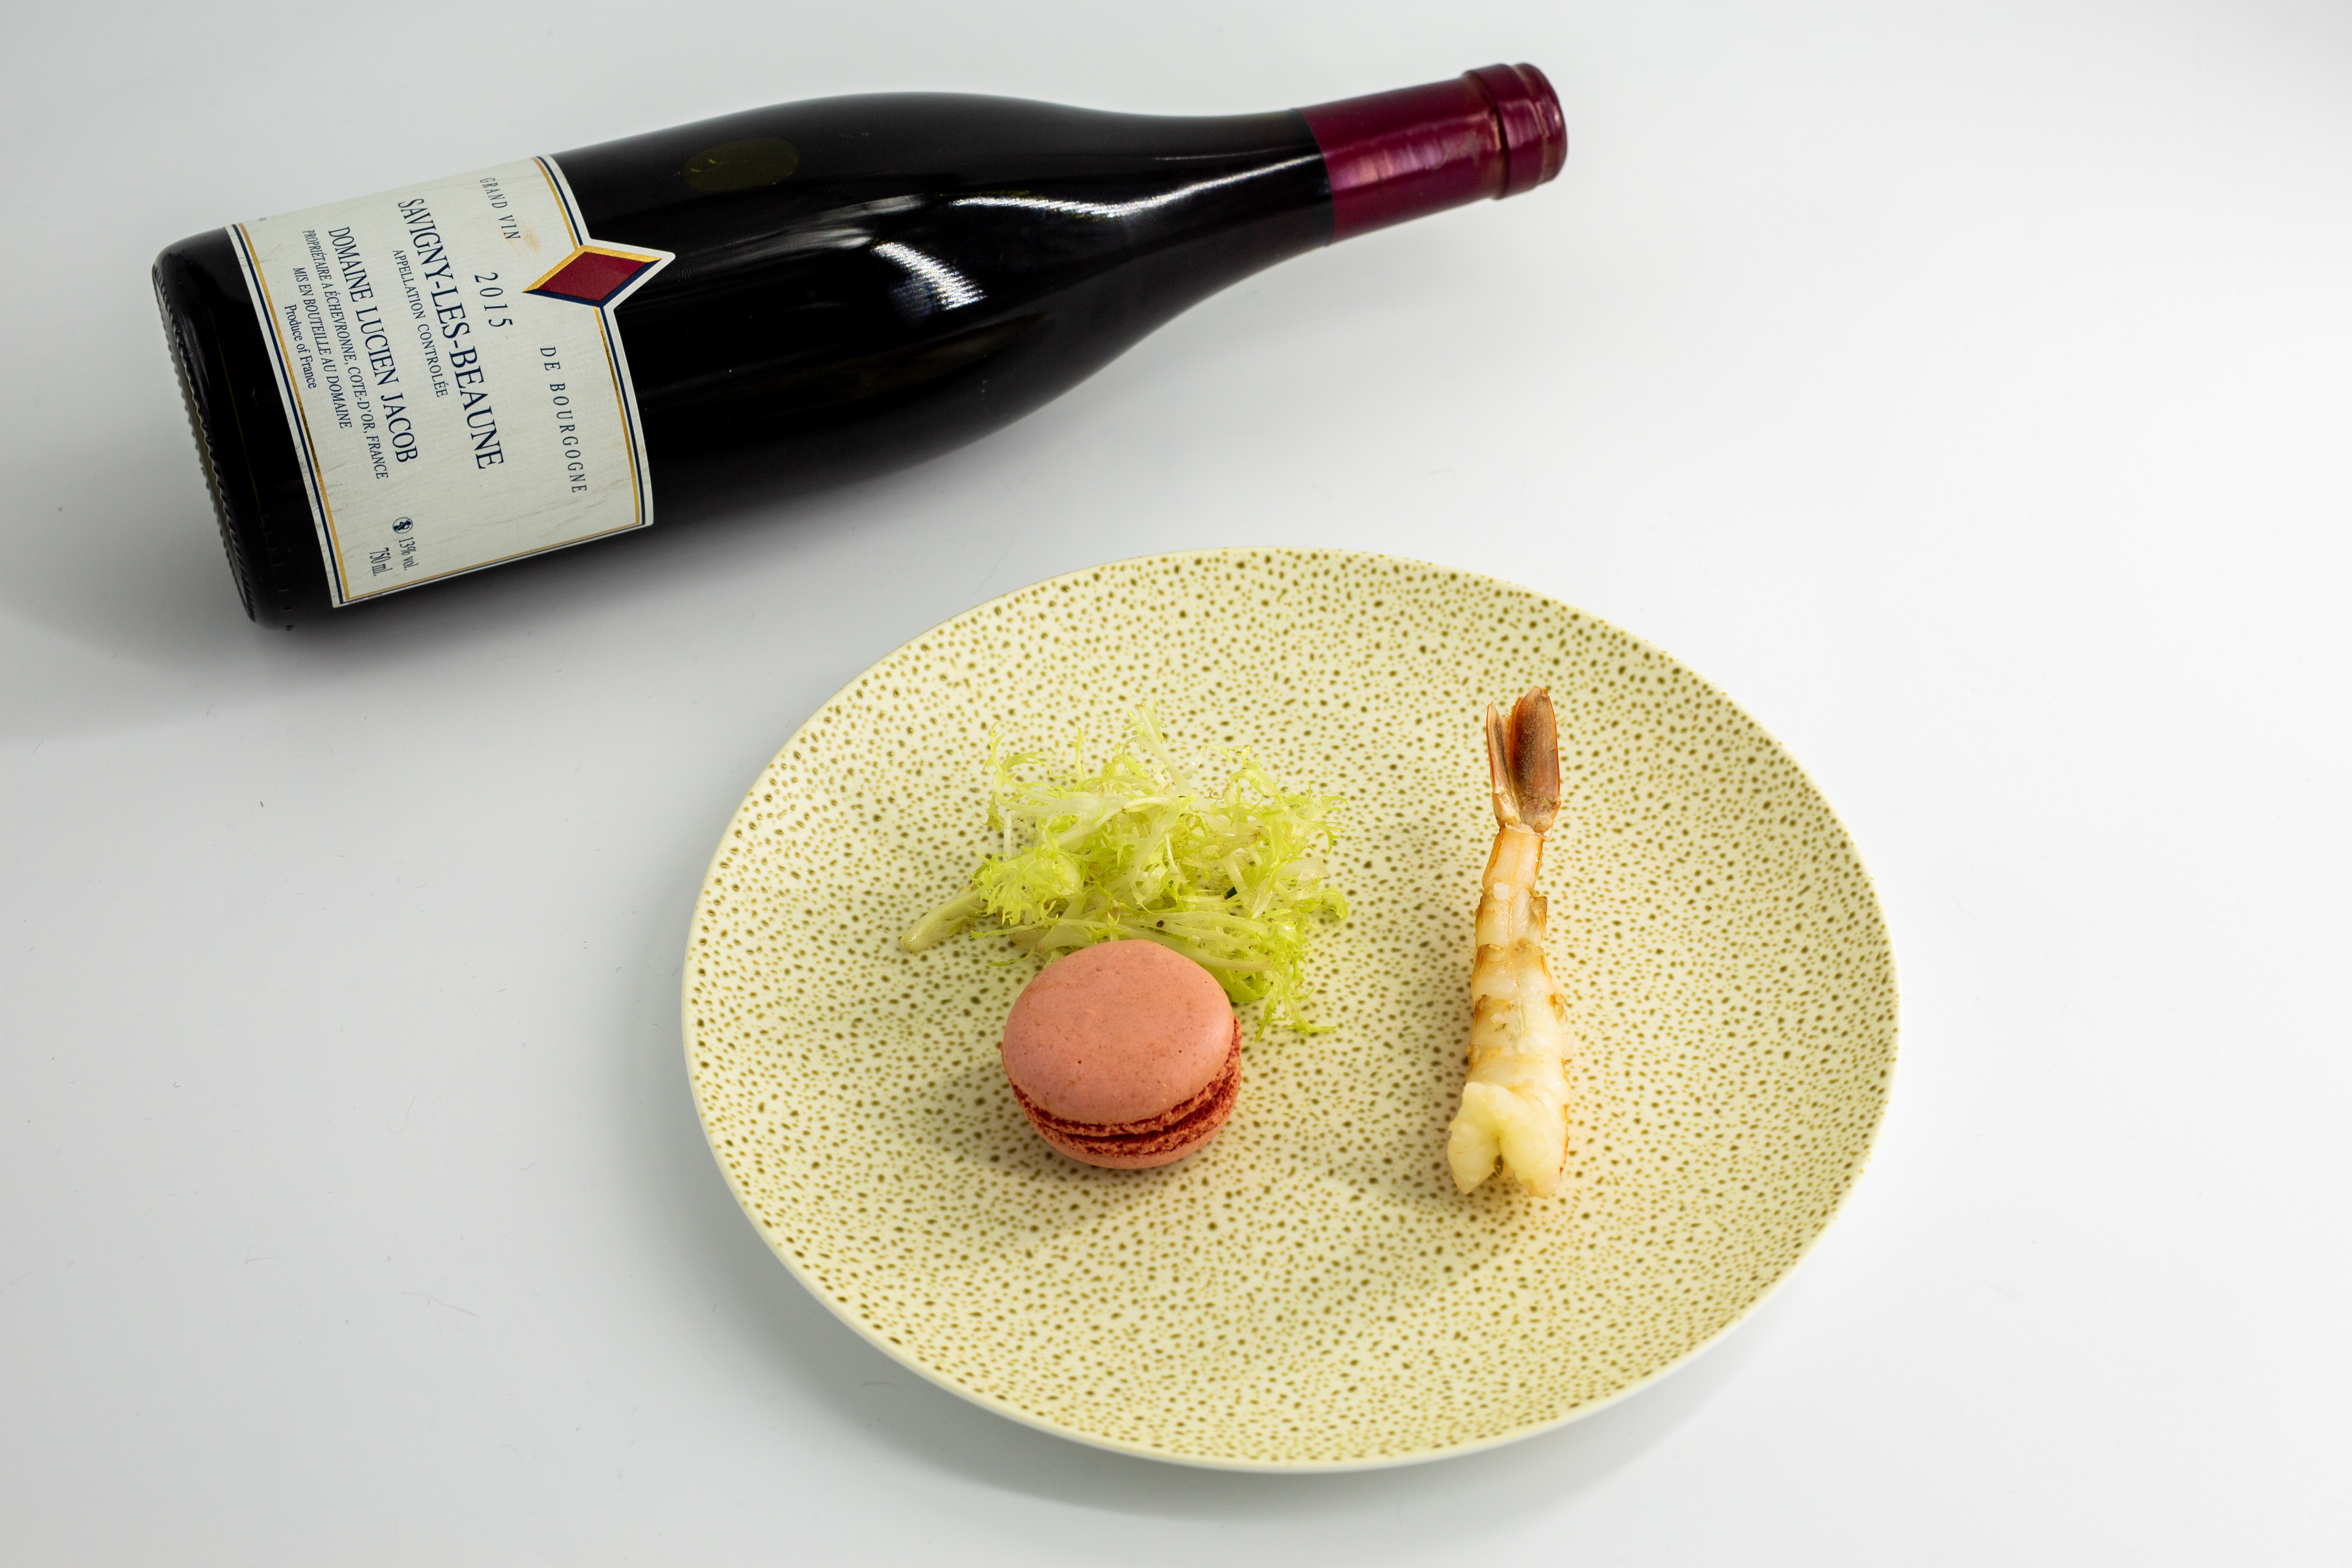 Food and wine pairing from a toronto event